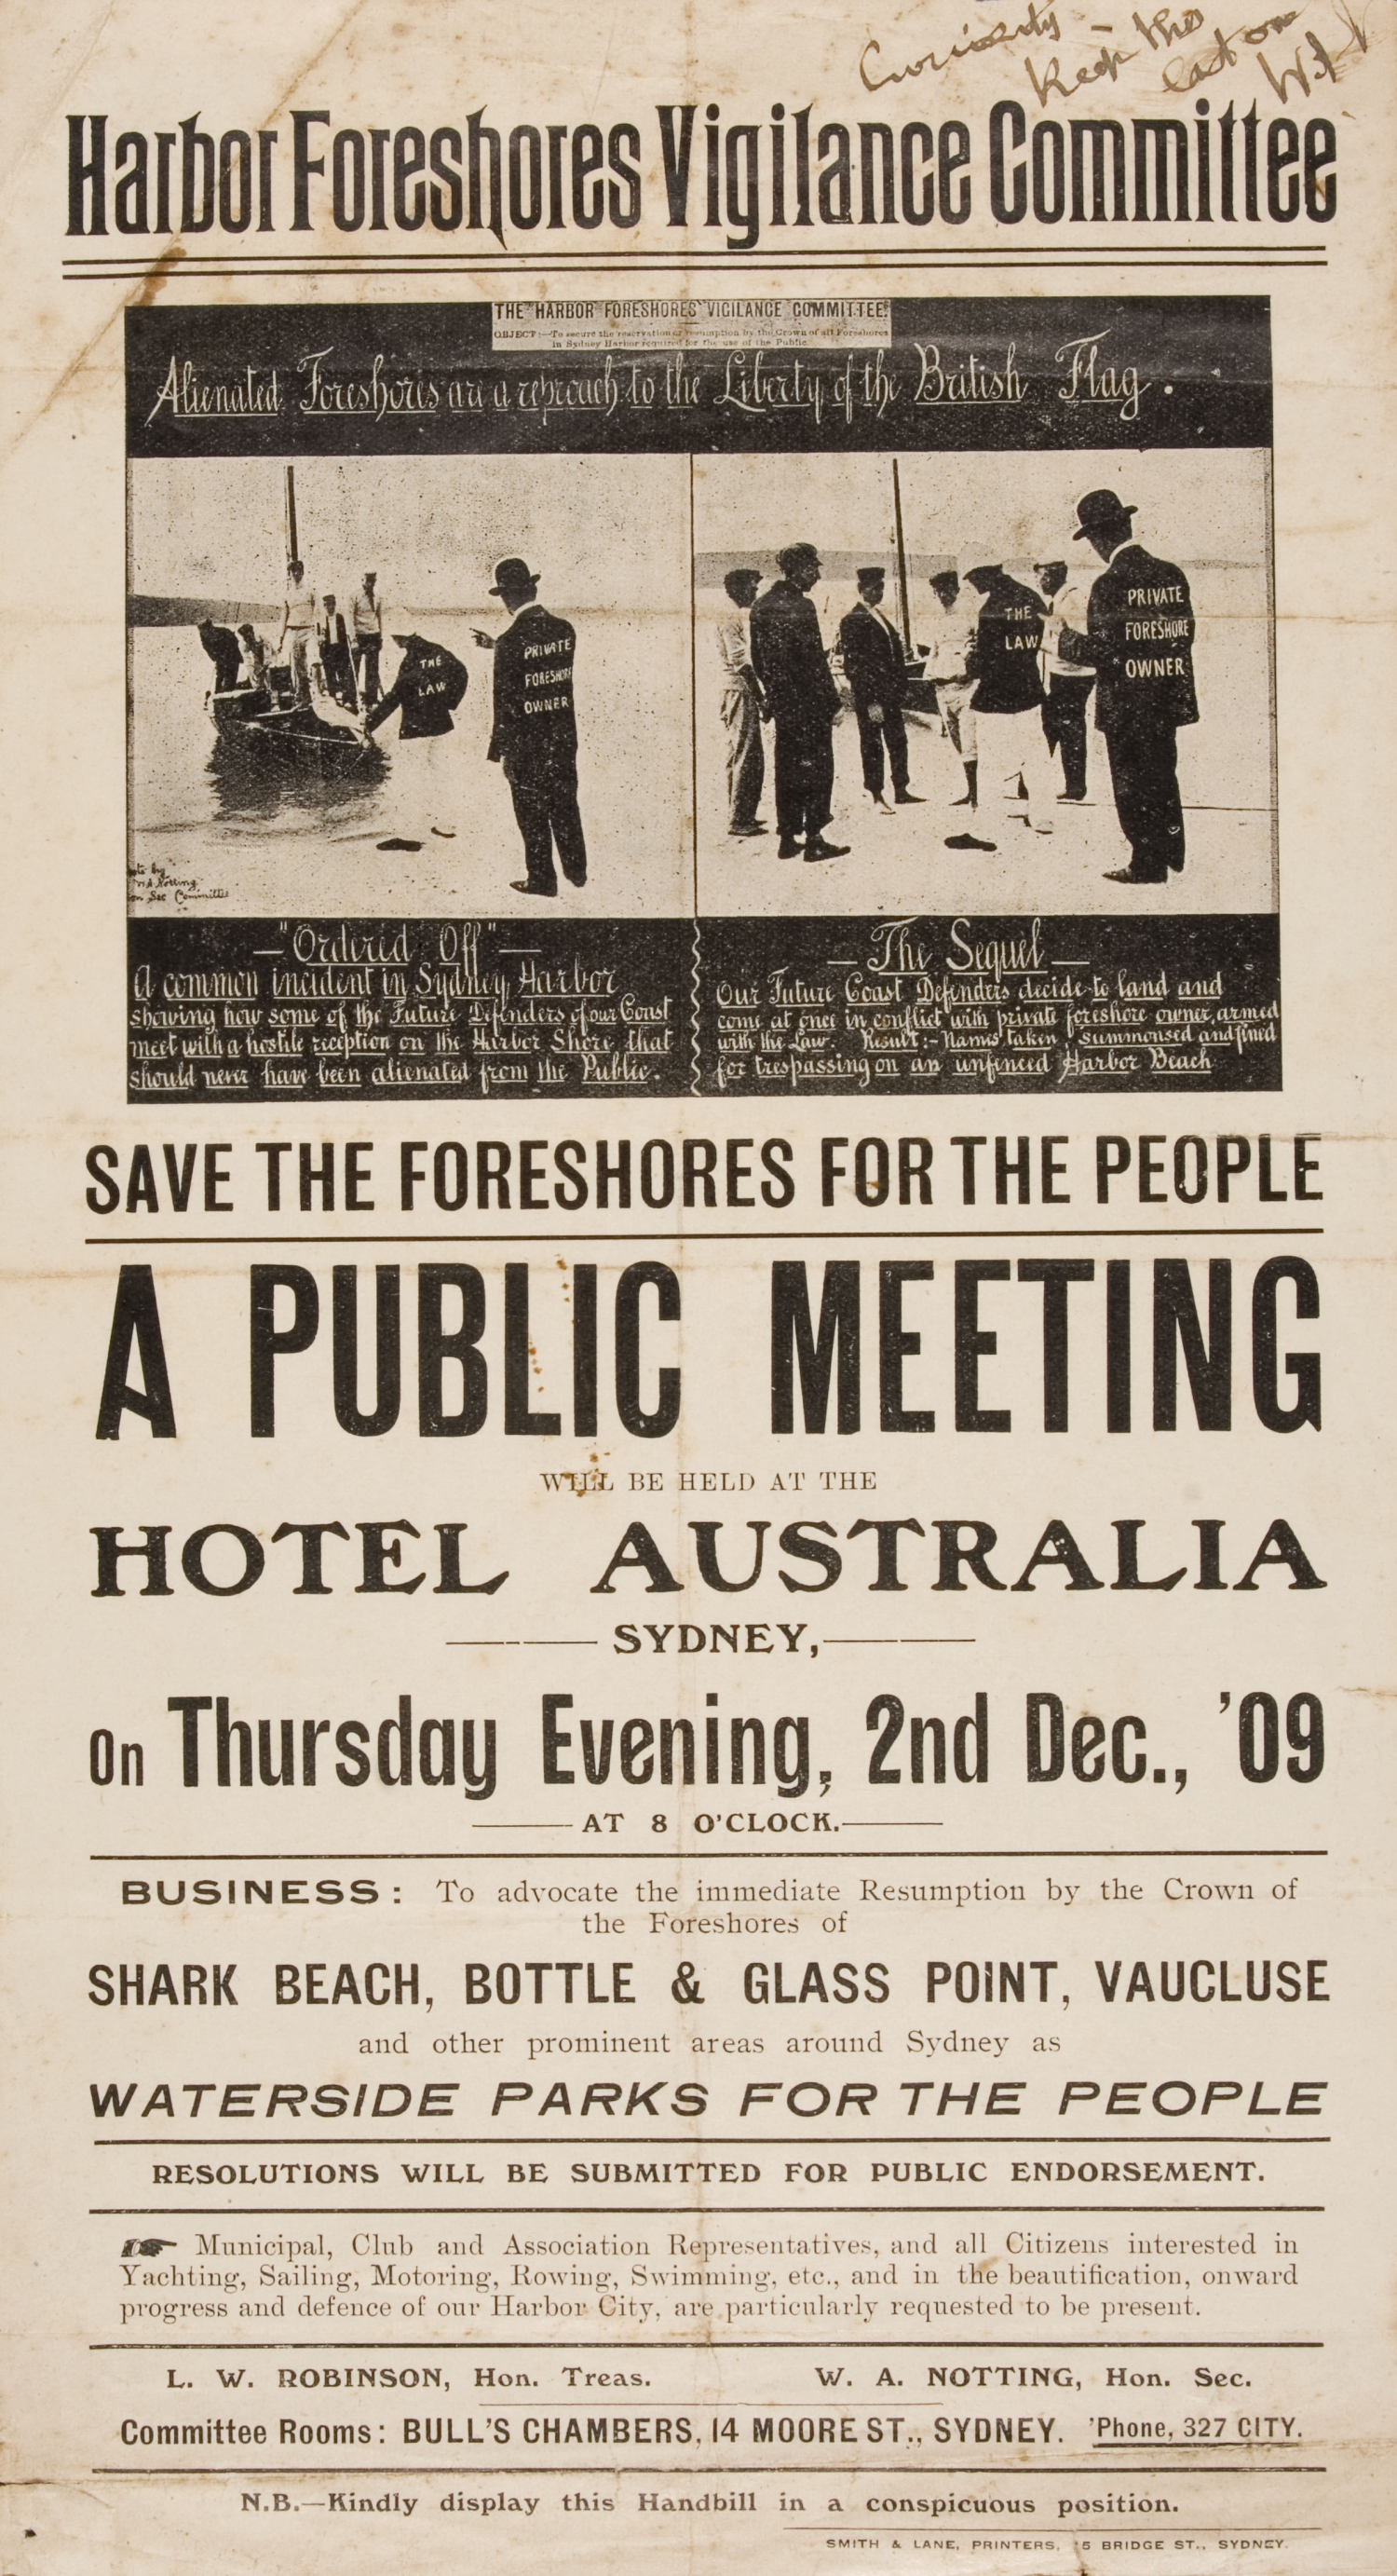 B/W printed handbill showing images of people being arrested by police for trespassing on a harbour beach.